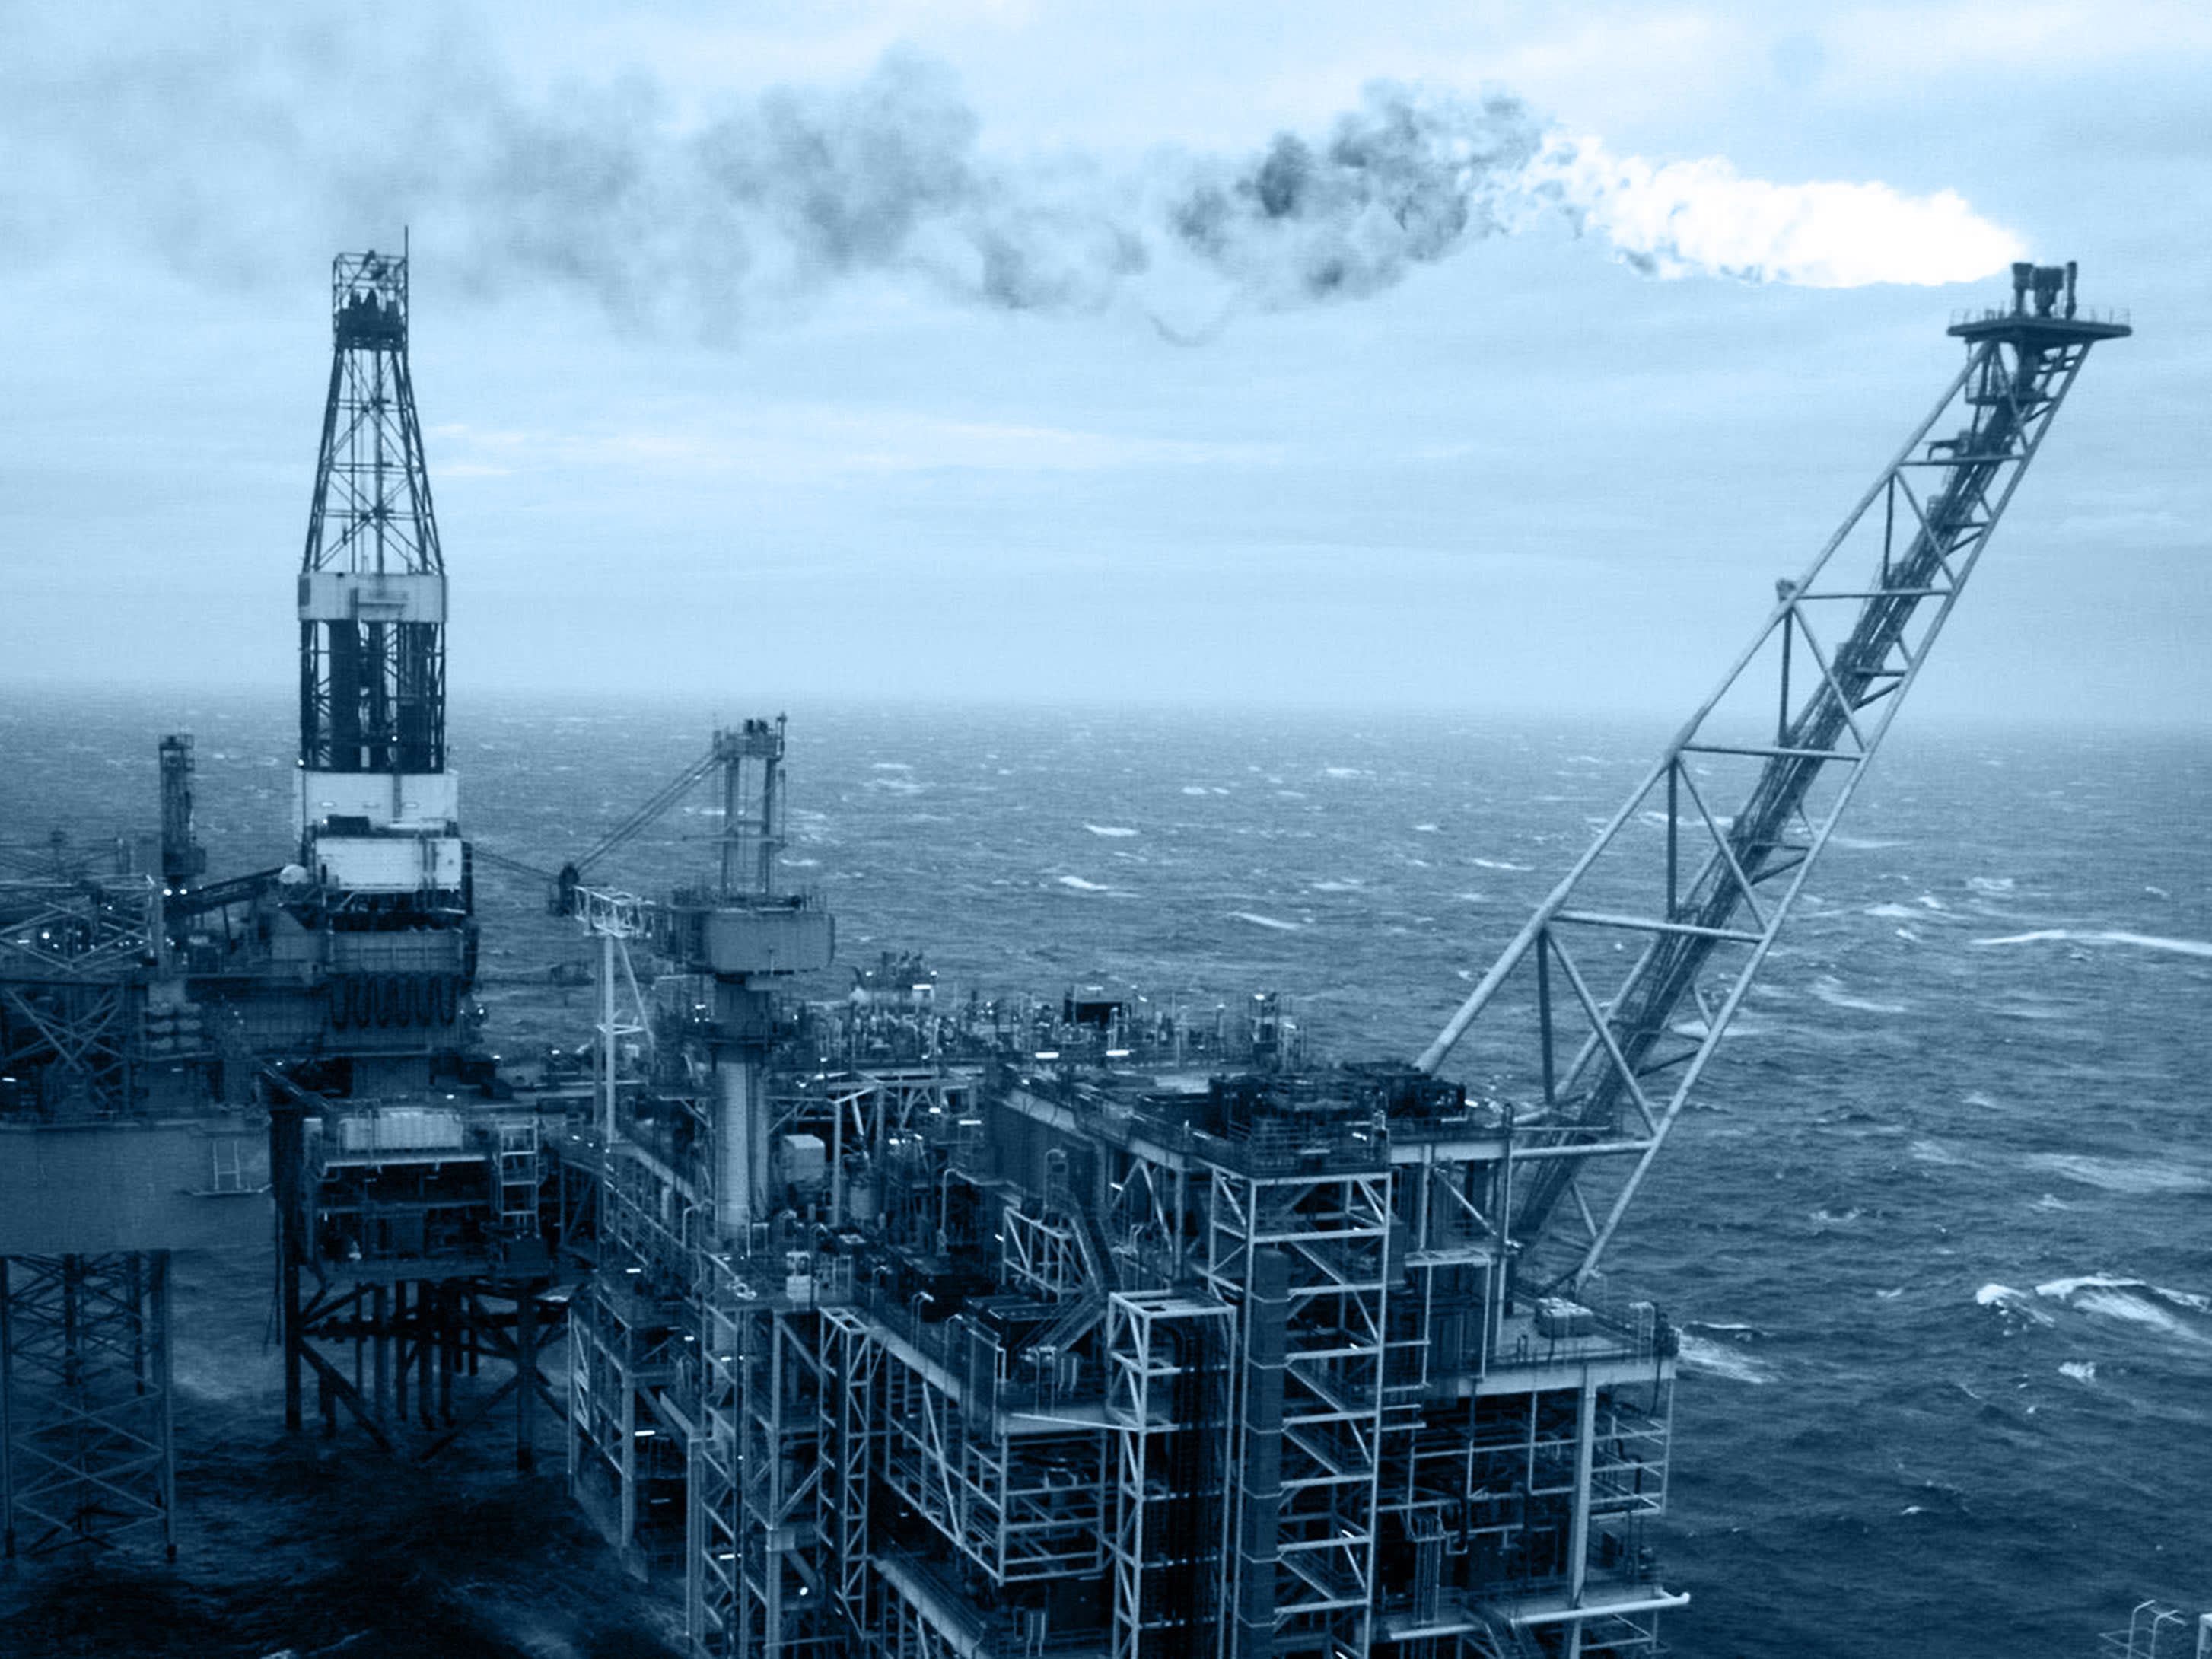 Sentiment towards Shell upbeat on energy crunch